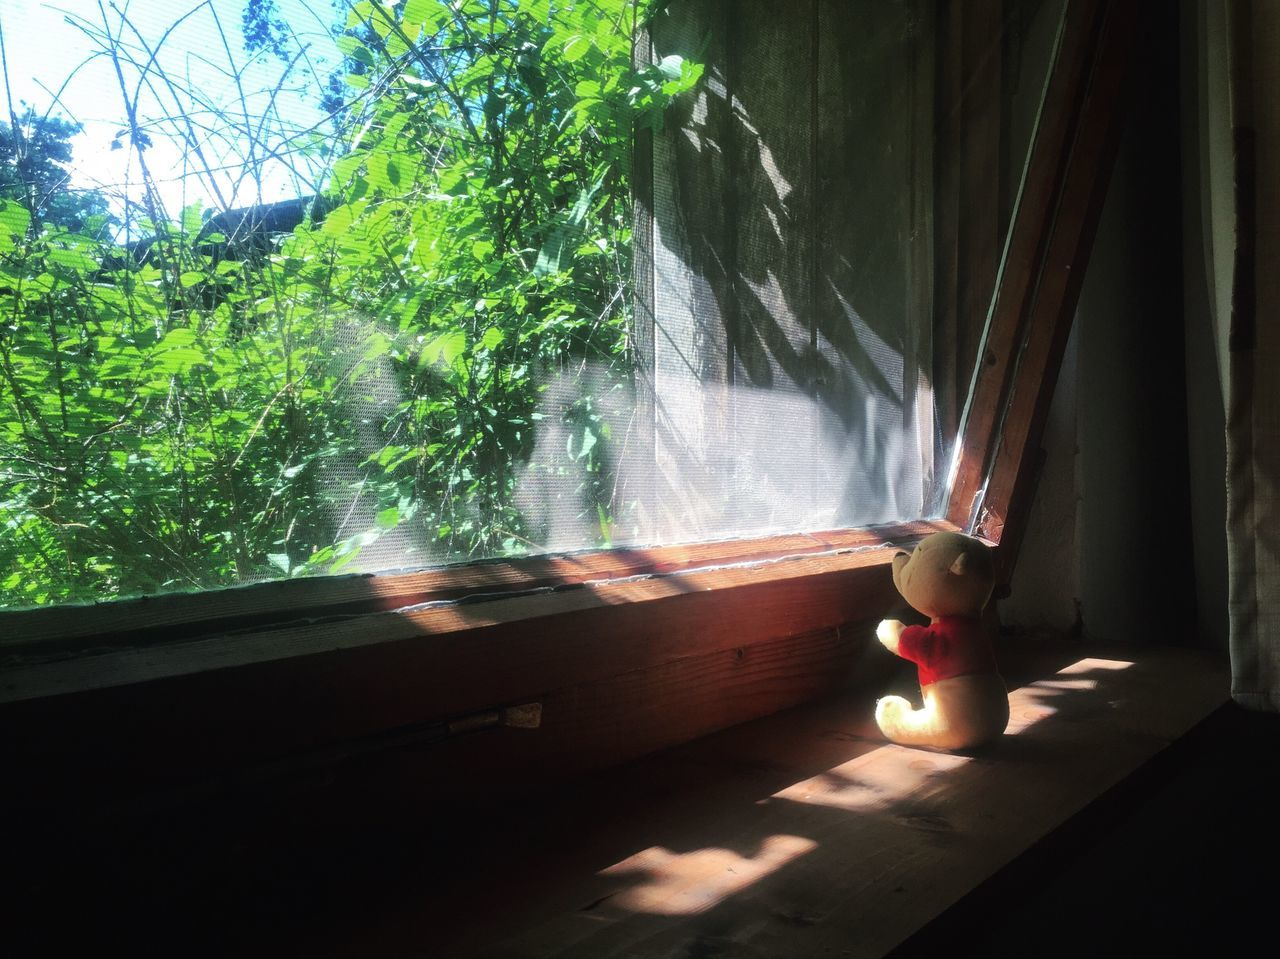 Teddy bear Window Human Representation Day Sunlight No People Indoors  Nature Water Tree Bear Toy Teddy Teddy Bear Childhood Childhood Memories Alone Lonely Game Windows